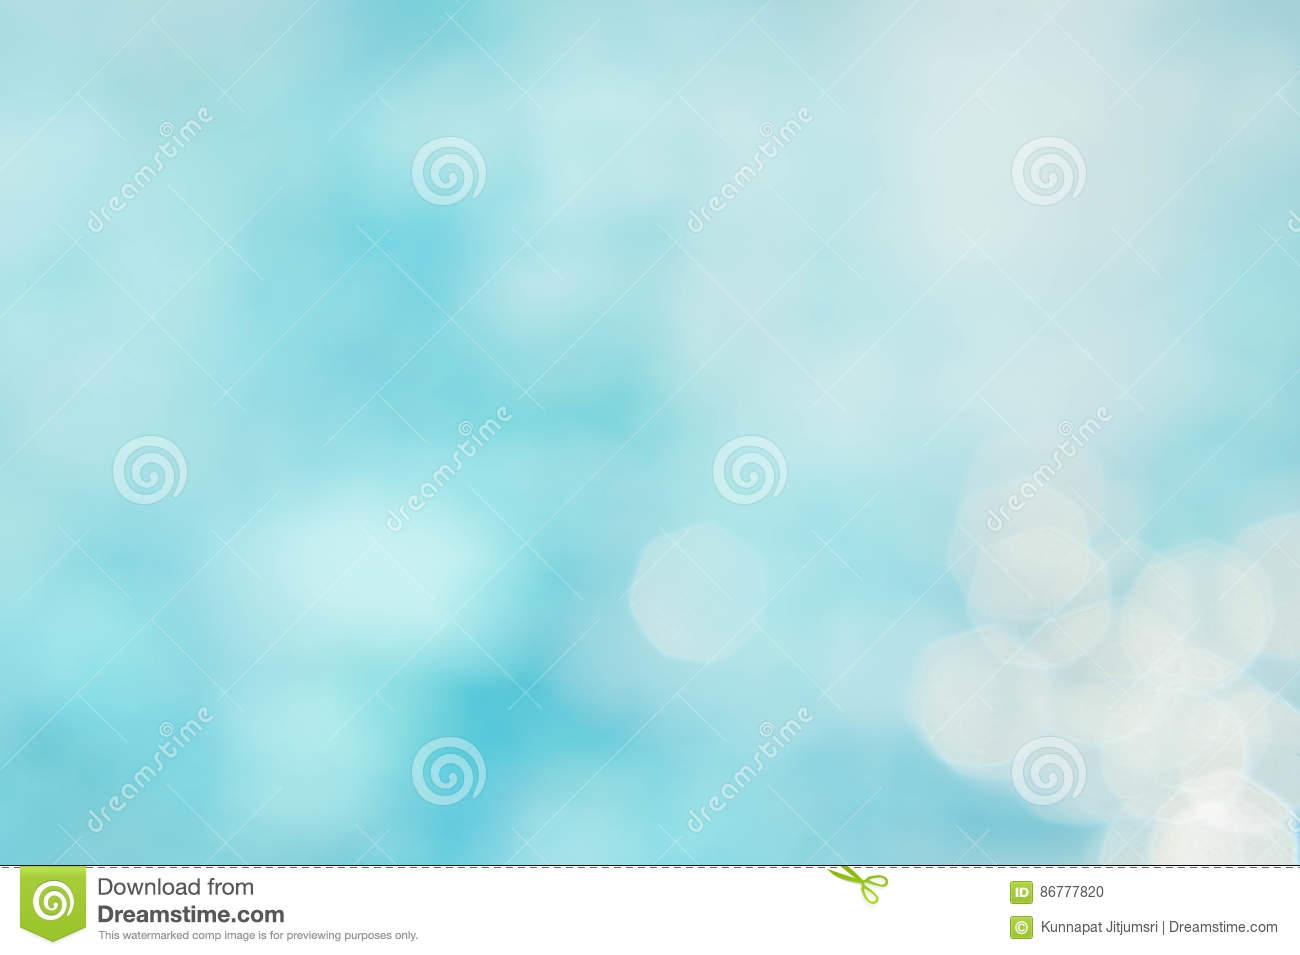 Le backgruond vert-bleu abstrait de tache floue, wallpaper la vague bleue avec s